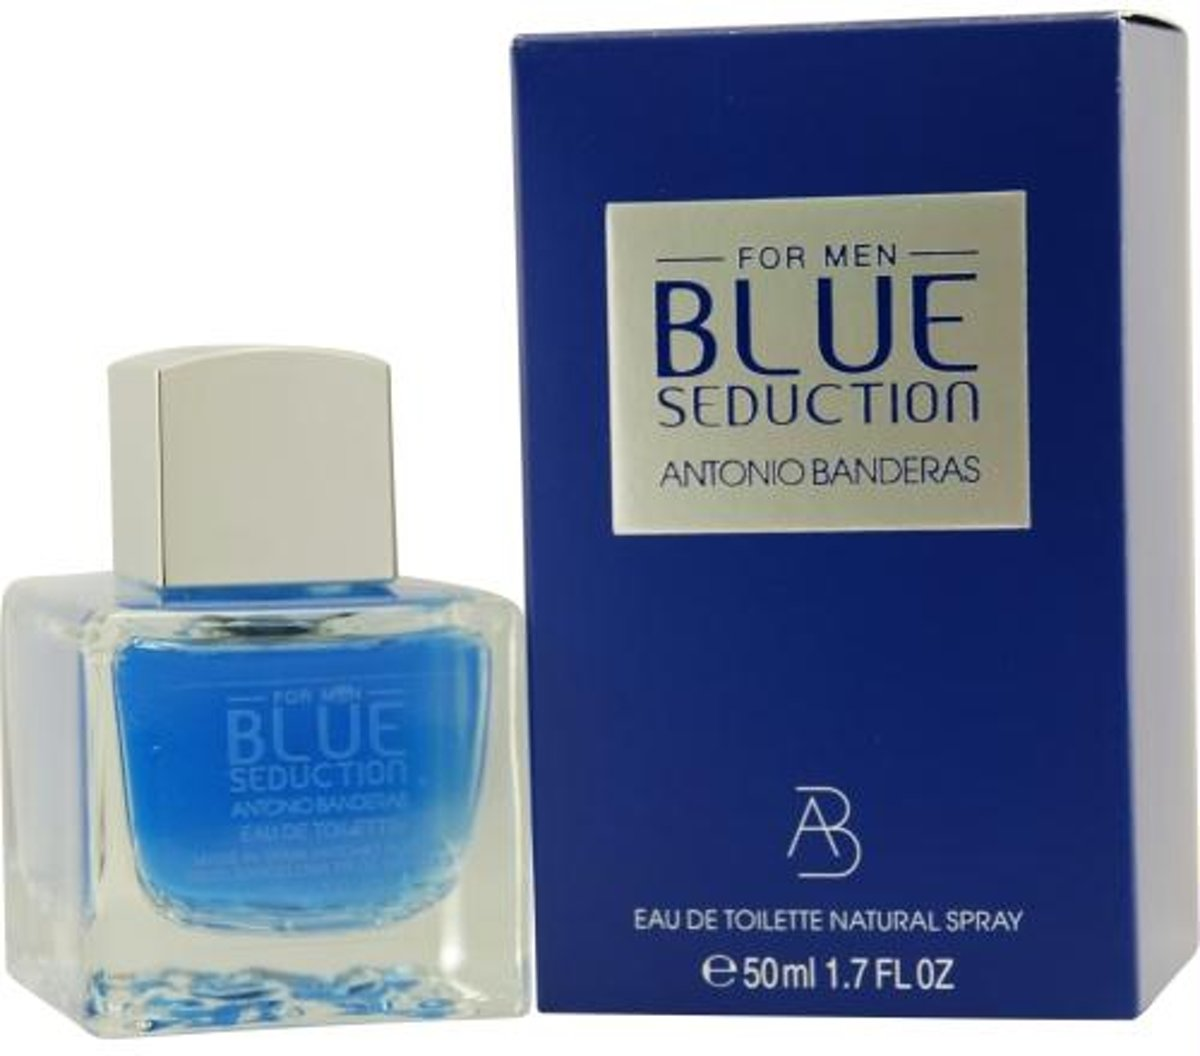 Antonio Banderas Blue Seduction 50ml EDT Spray